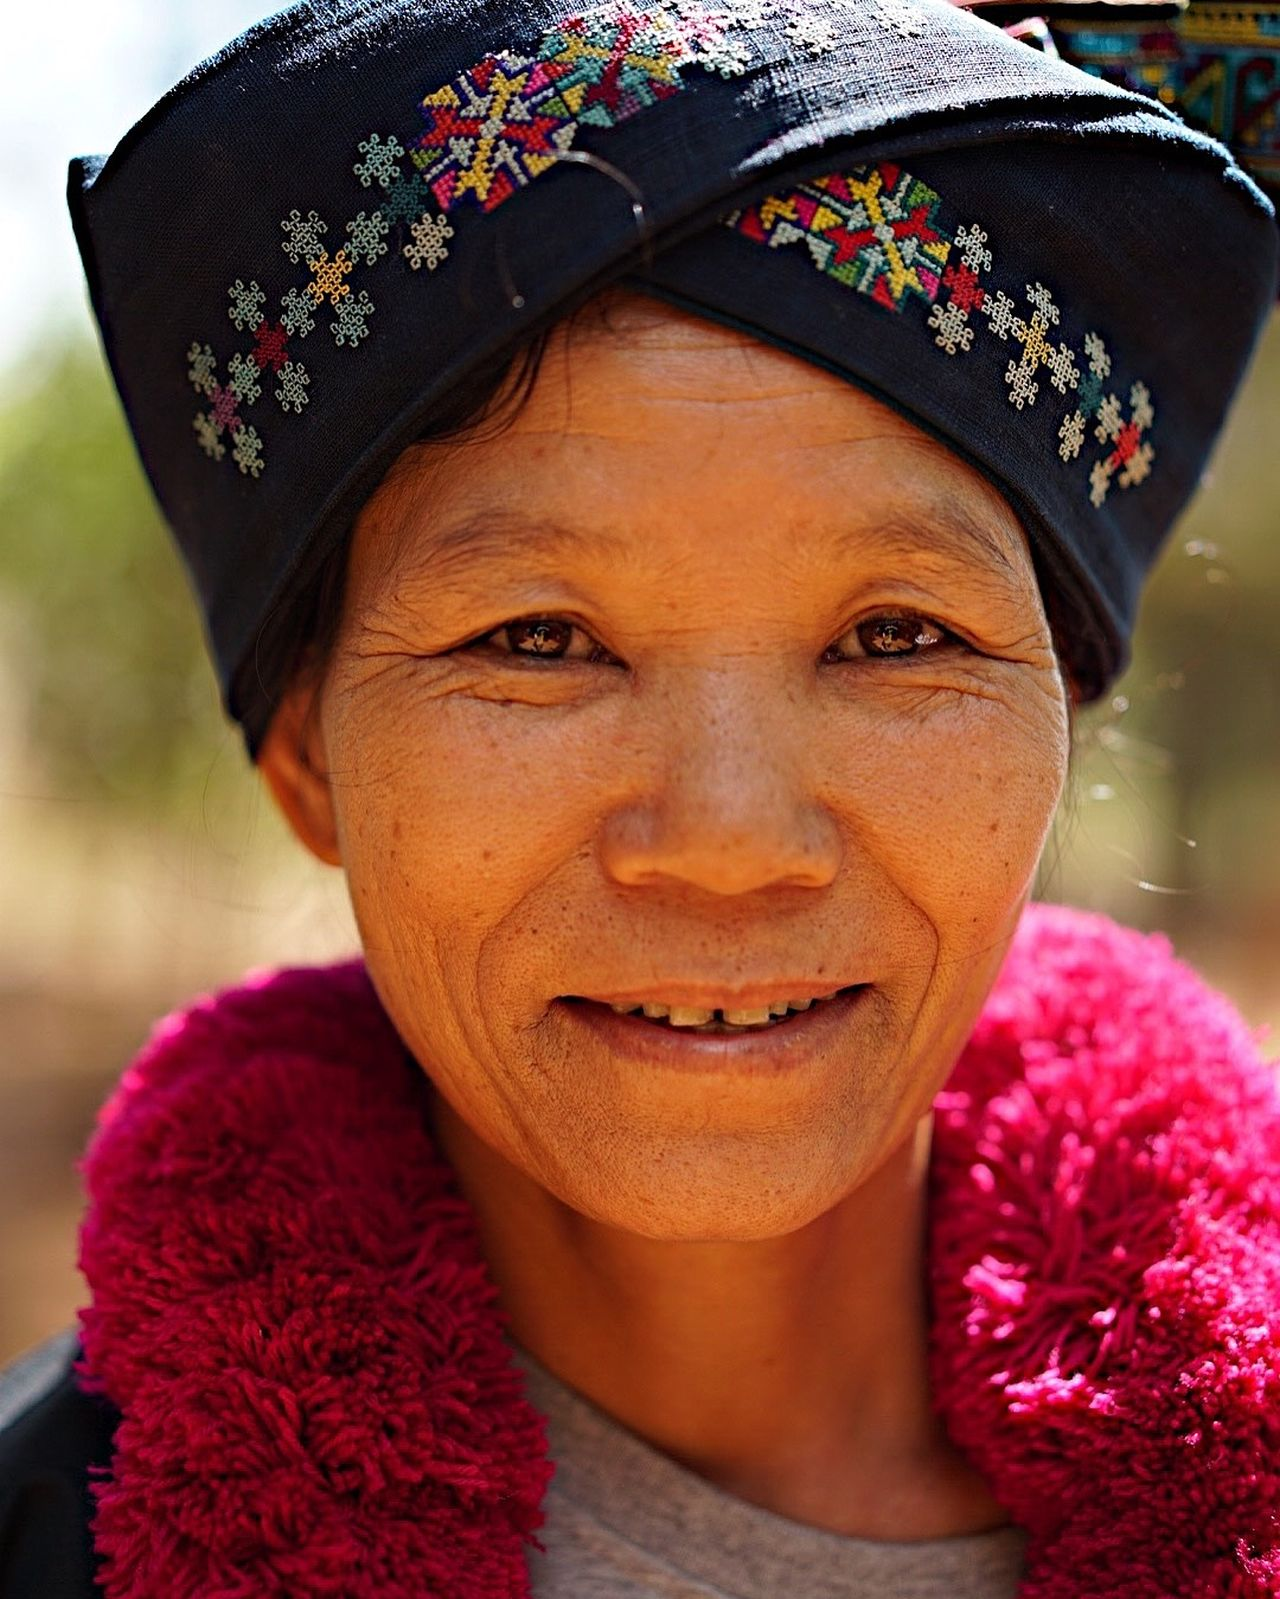 Close-up Day Flower Laos Travel Looking At Camera On The Road One Person Outdoors People Portrait Portrait Photography Real People Smiling Travel Destinations Travel Photography Travelling Travelphotography